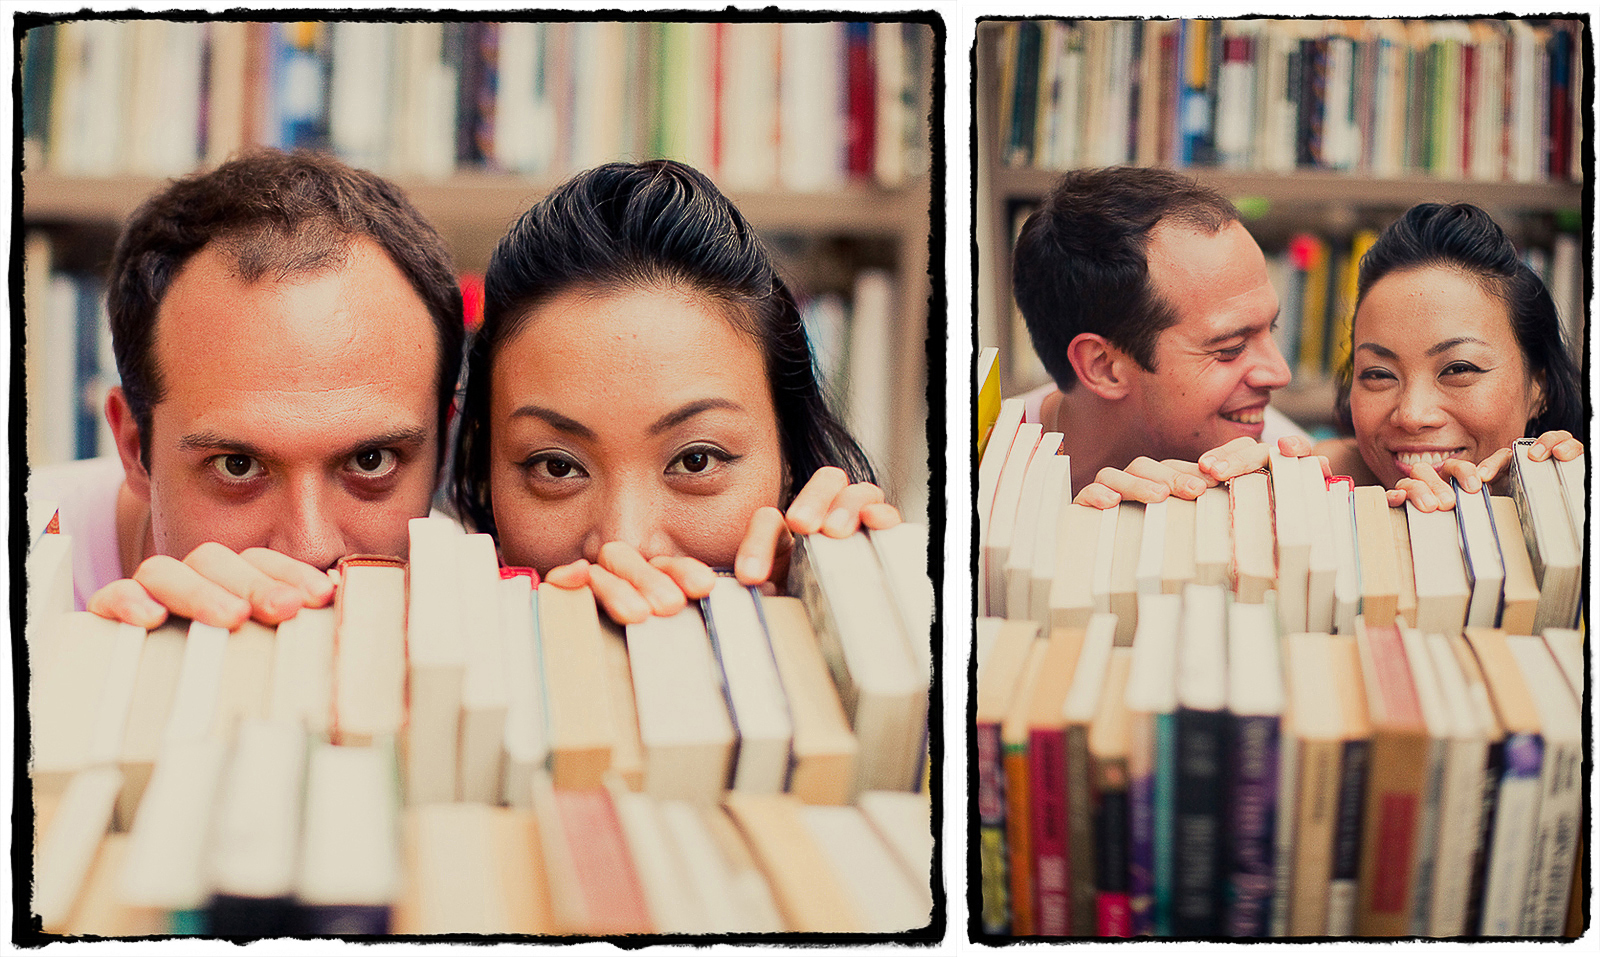 Engagement Portraits: Bajir & Maki goof around with a shelf of books for sale in Williamsburg, Brooklyn.